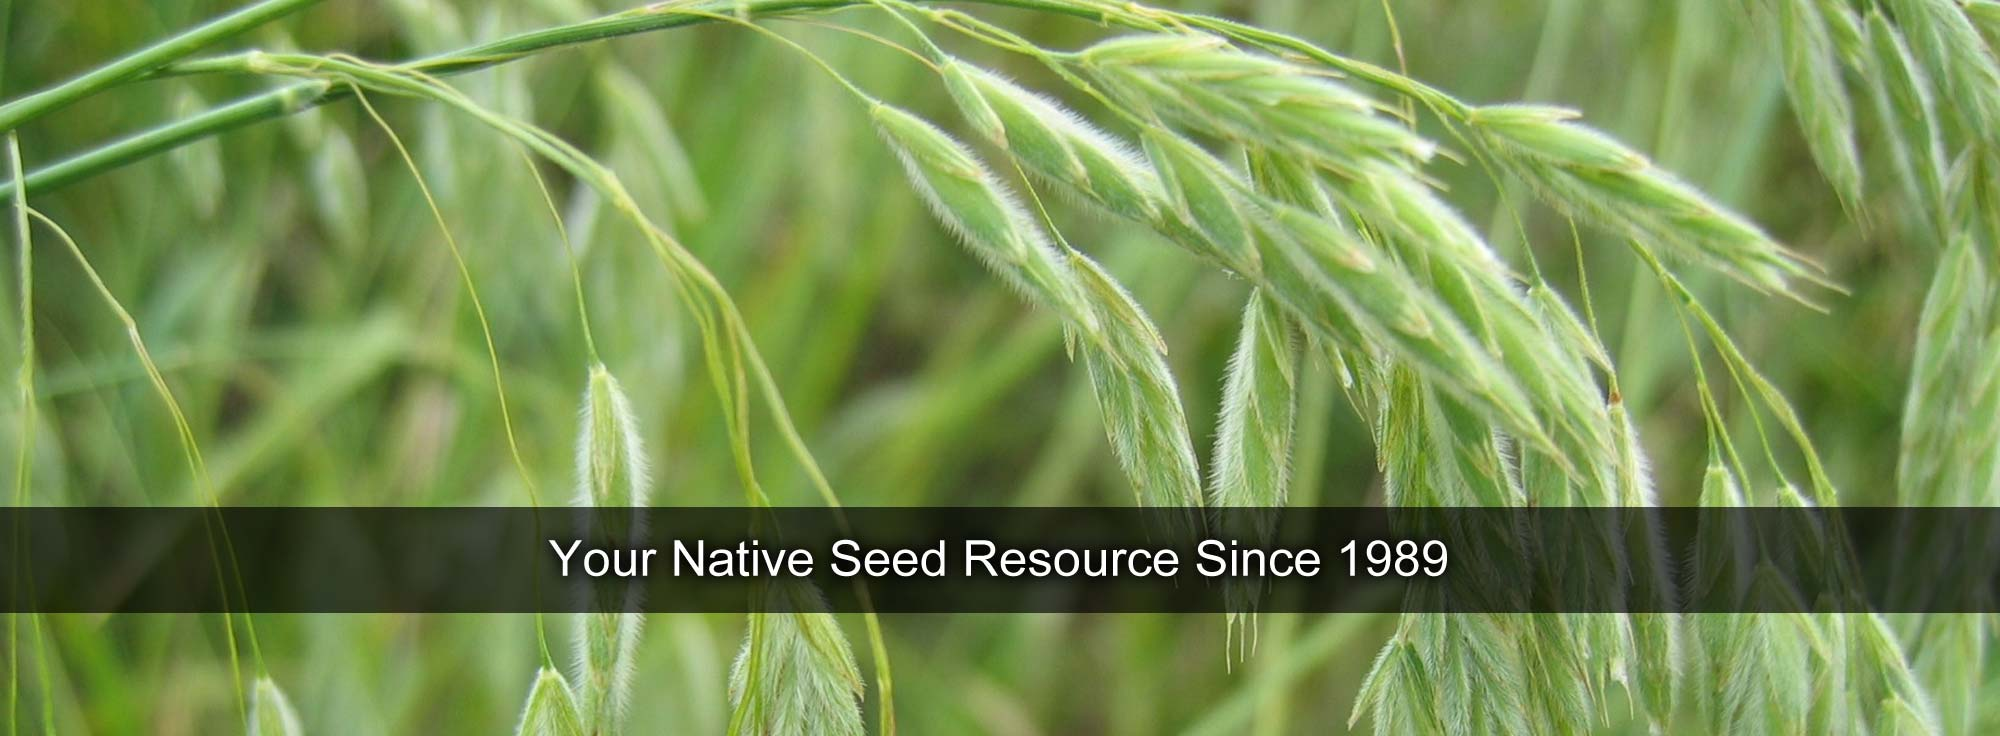 Your Native Seed Resource Since 1989